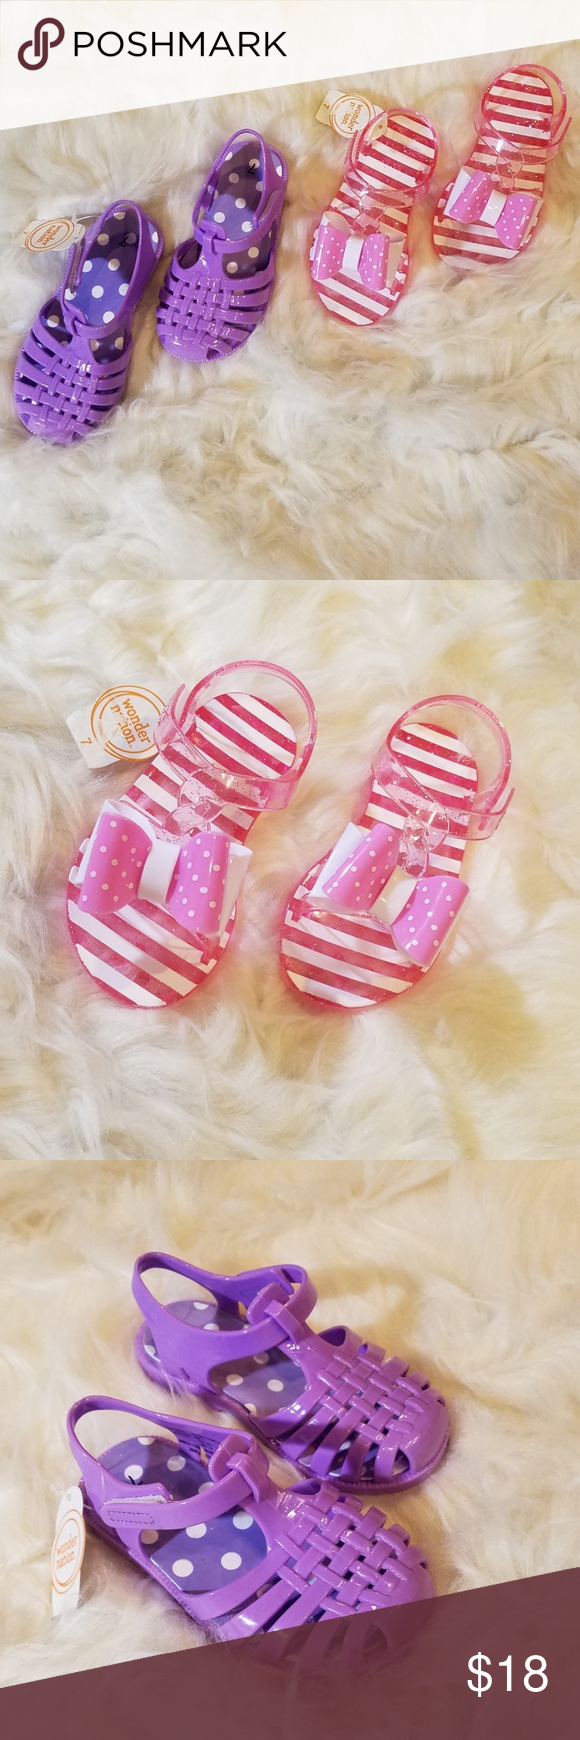 3b1ca4358 NWT 🏷 2 Pair of Purple Pink jelly toddler sandals Both New With Tags!